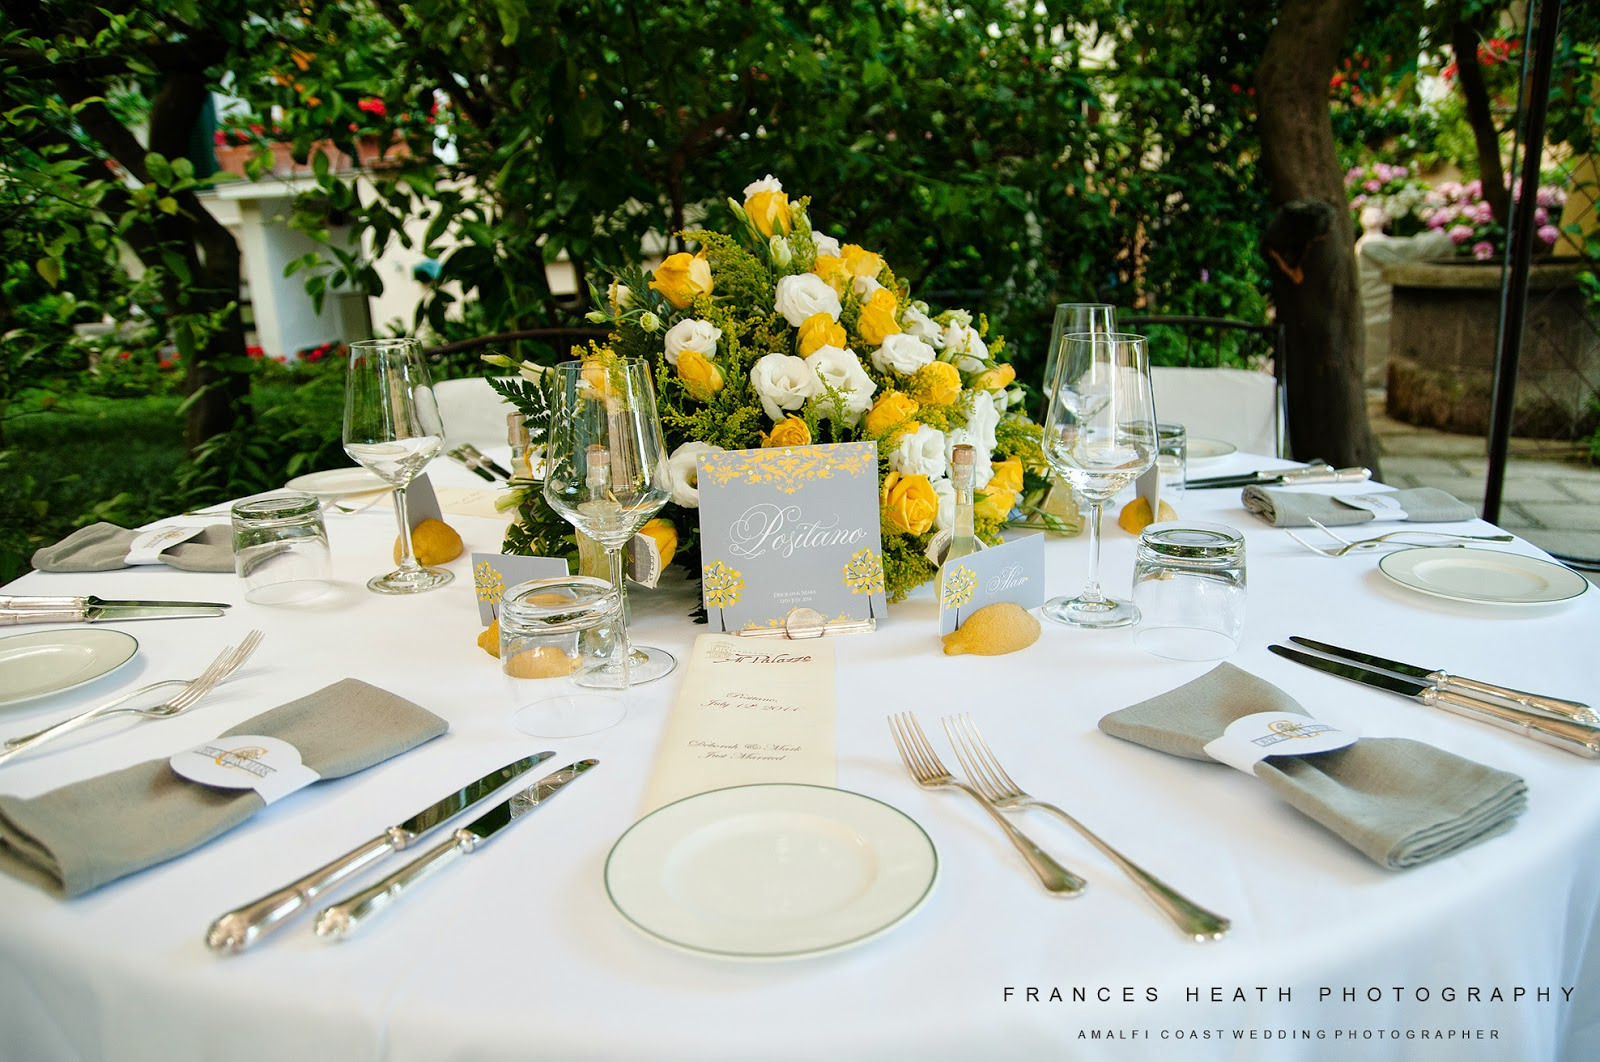 Wedding table decorations with lemons at Palazzo Murat in Positano